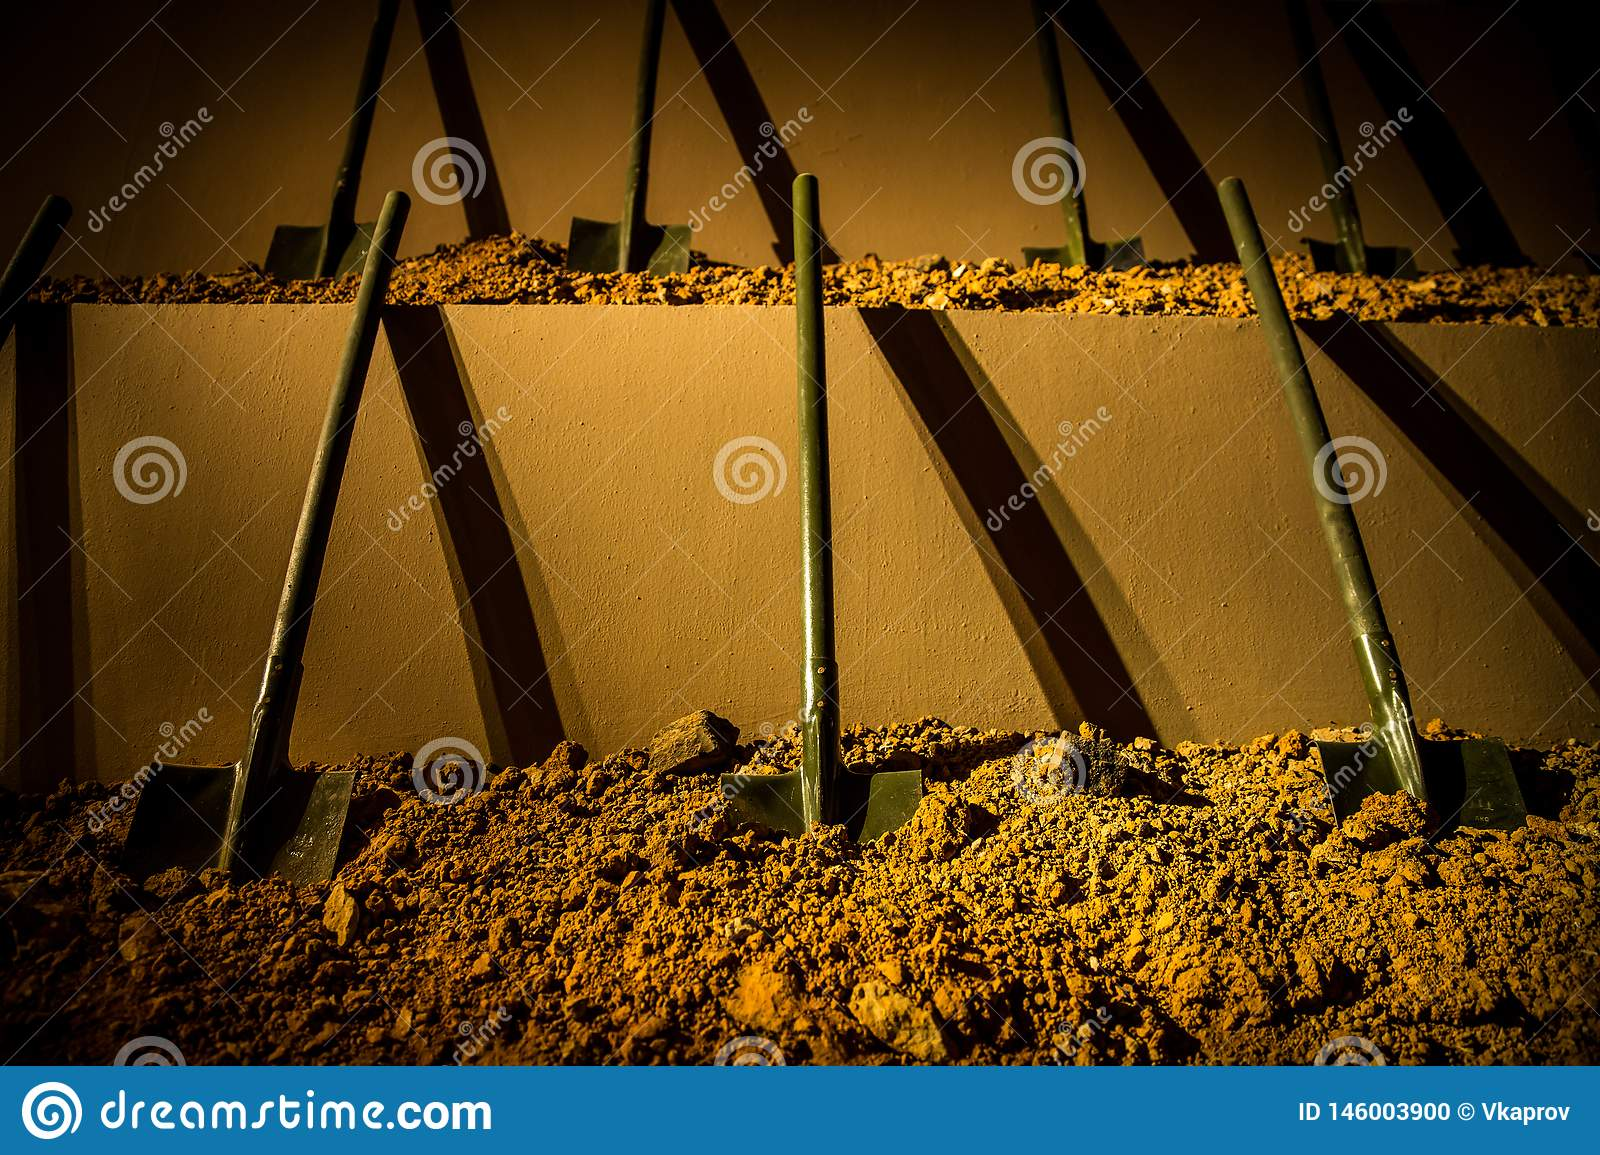 Six symmetrically placed shovels stuck into the ground